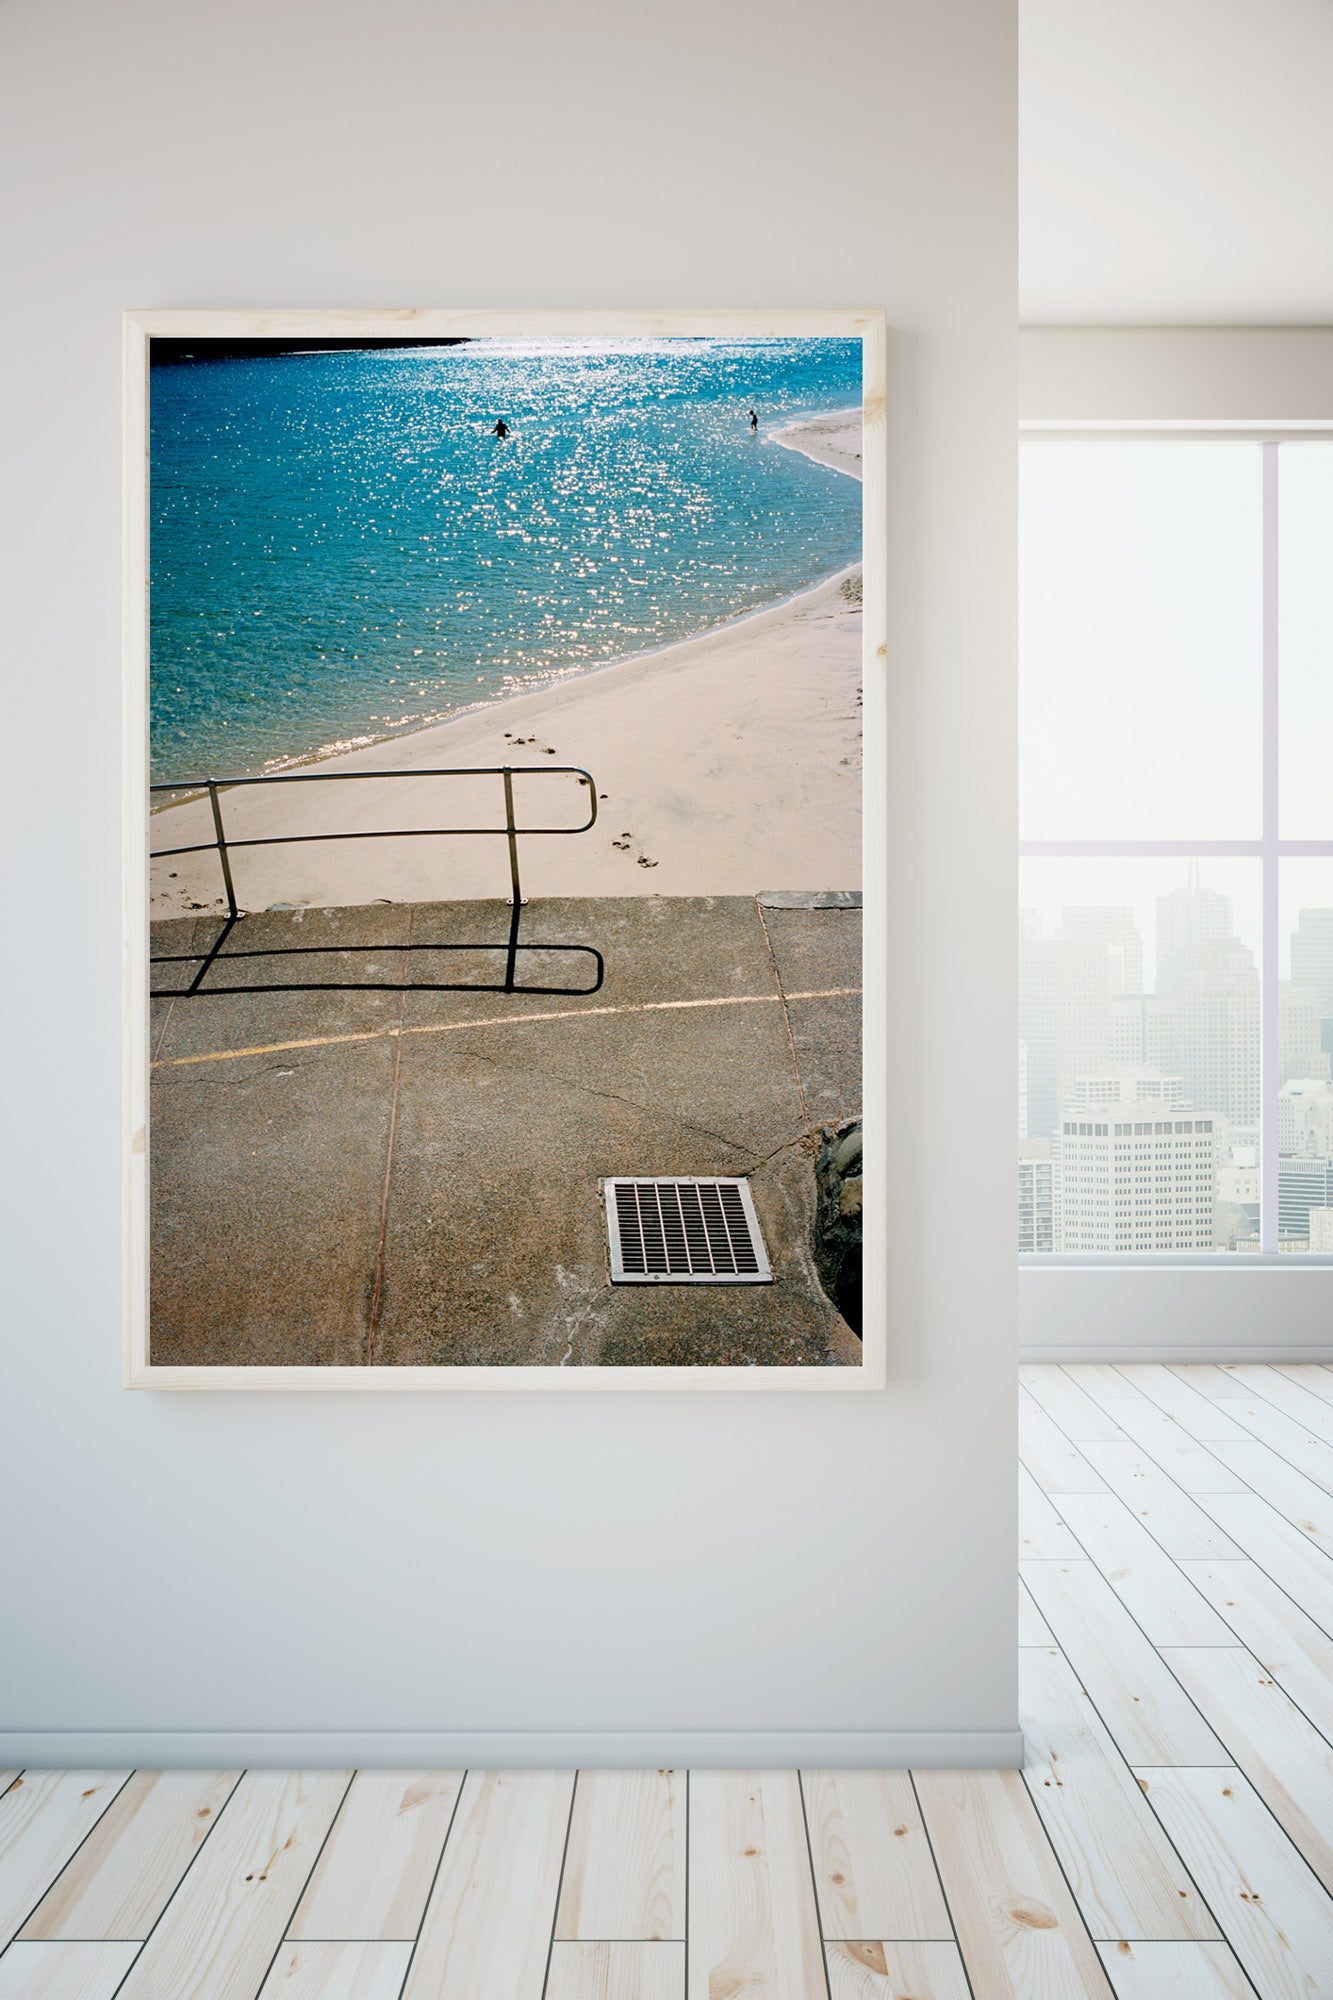 """A photograph of a blue river with people swimming, a pavement & rallying in the foreground of the photo. White sand and & water. The photo is in portrait orientation."" Artwork, Prints, wall art, GoldCoast Queensland Australia, Photographic prints, Ocean Beach, Framed artwork, Beach Posters   Film photography, Vintage photo style,  Interior design, Film photography Pictures sun & surf,"